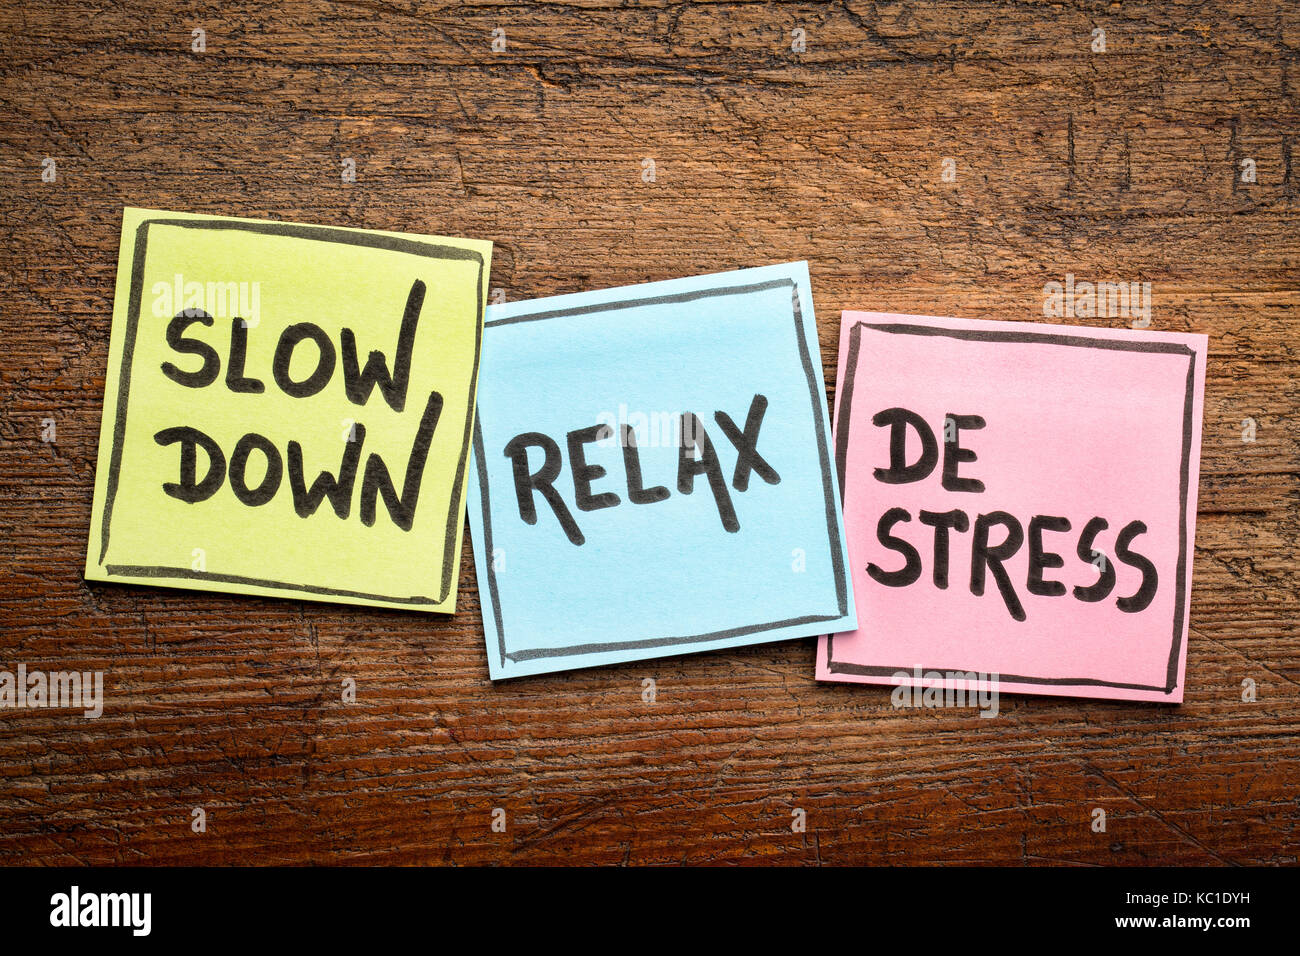 slow down, relax, de-stress concept -  motivational lifestyle reminders on colorful sticky notes against rustic - Stock Image